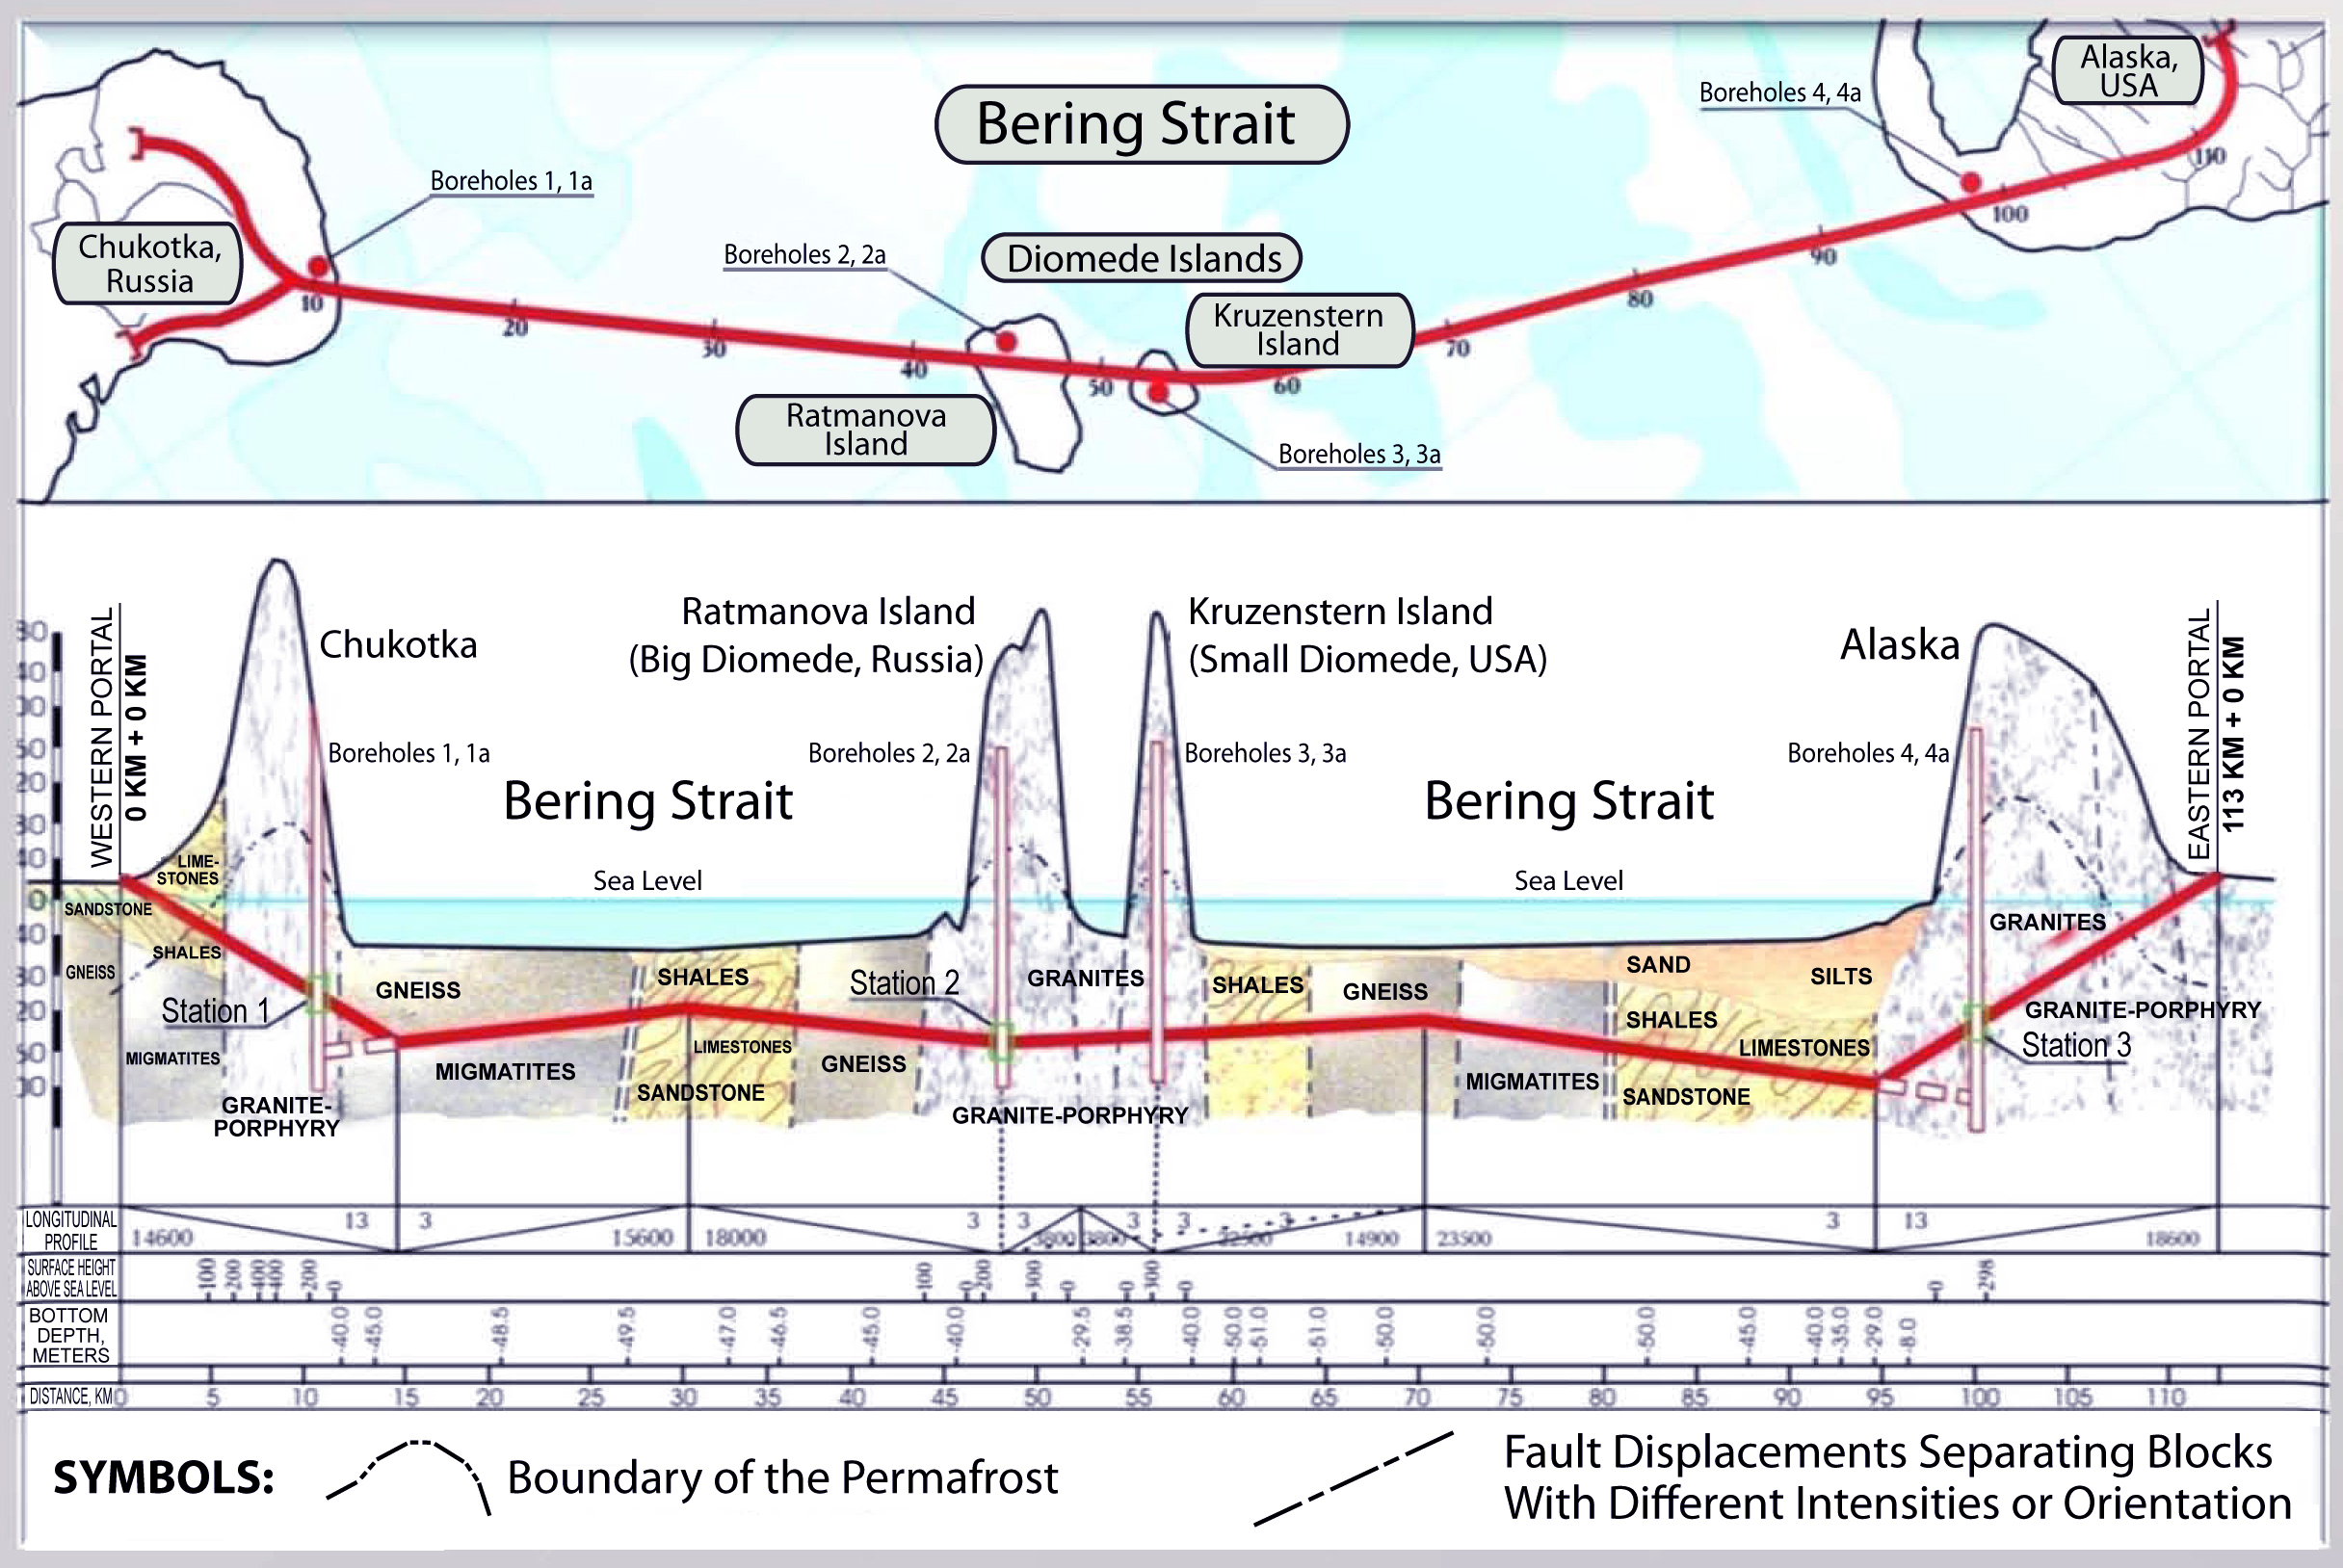 maglev train diagram msd 6al wiring chrysler russia suggests to us and europe use transport corridor via her territory, russian media ...